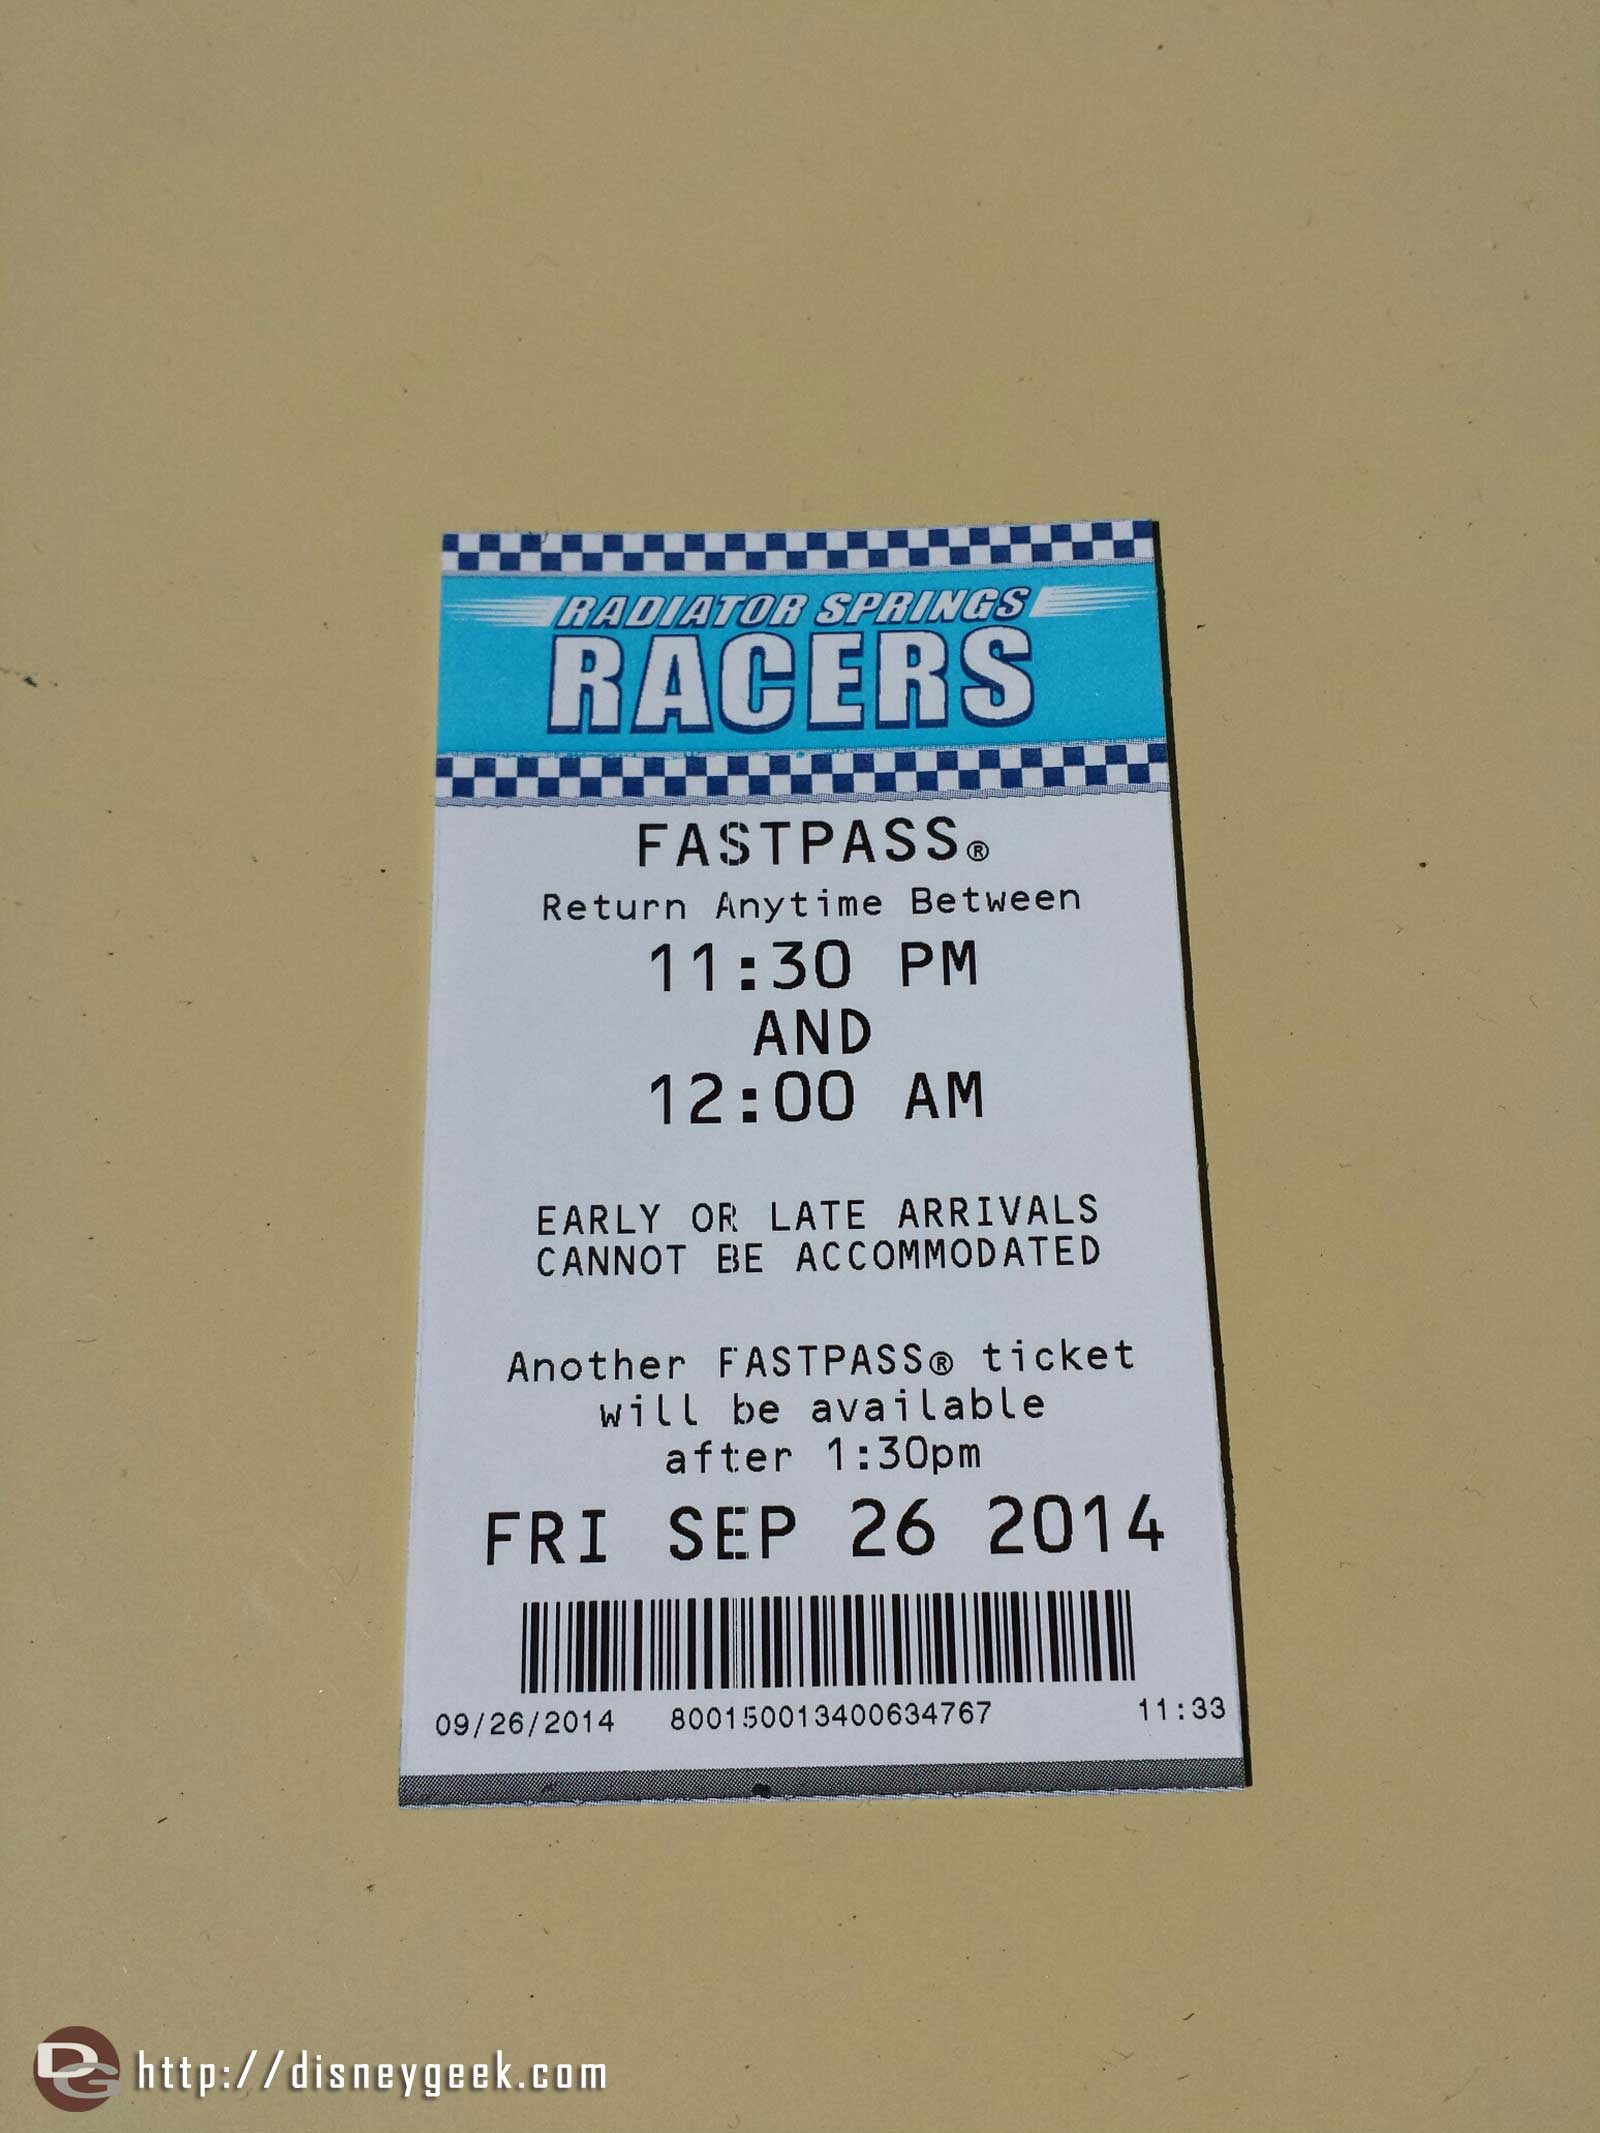 Not as good of a return time for the Racers this week #CarsLand